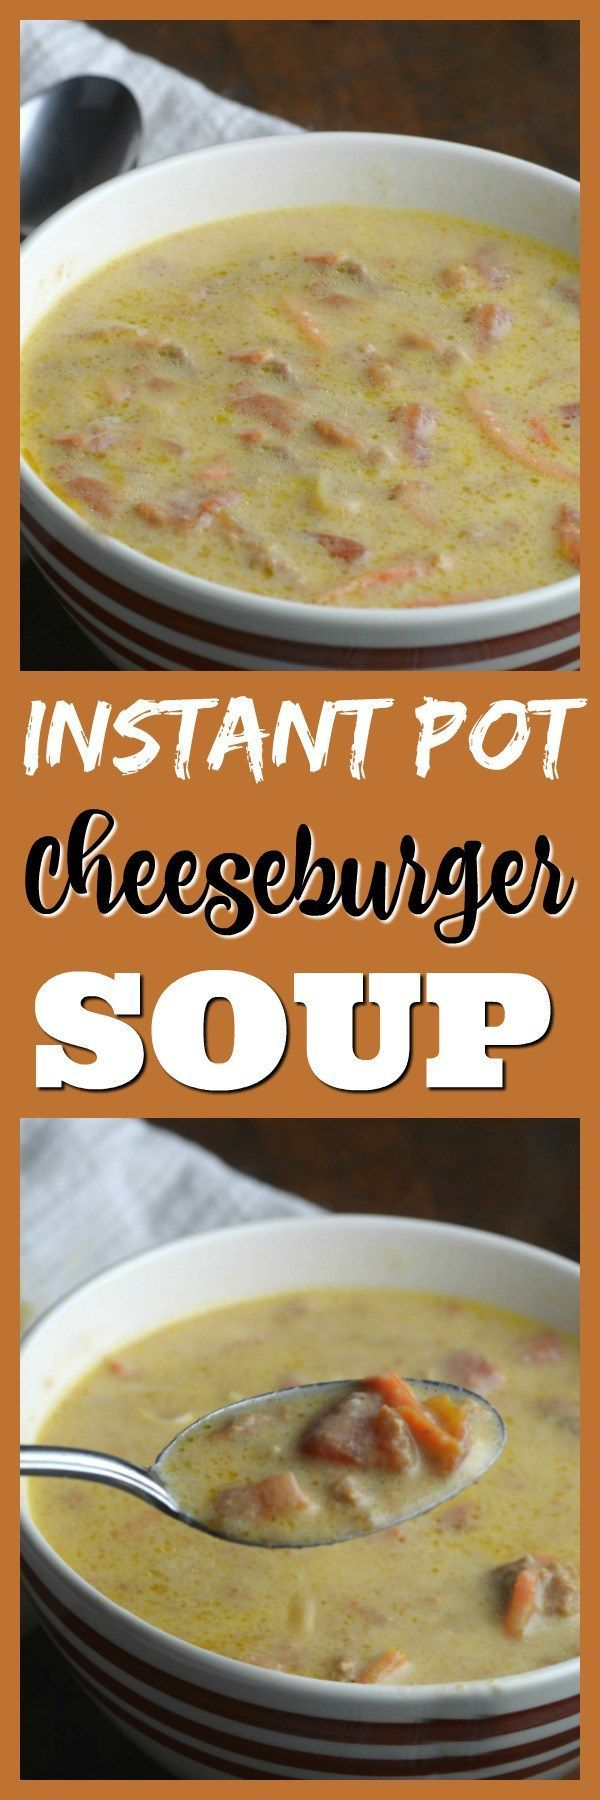 Share with friendsInstant Pot Cheeseburger Soup It has already snowed here in central NY one day it was 62 the next we had a snow storm it figures. I think we are headed for a bad winter this year. That means lots of soups, stews, and casserole's in my Instant pot. Thanksgiving is over and …